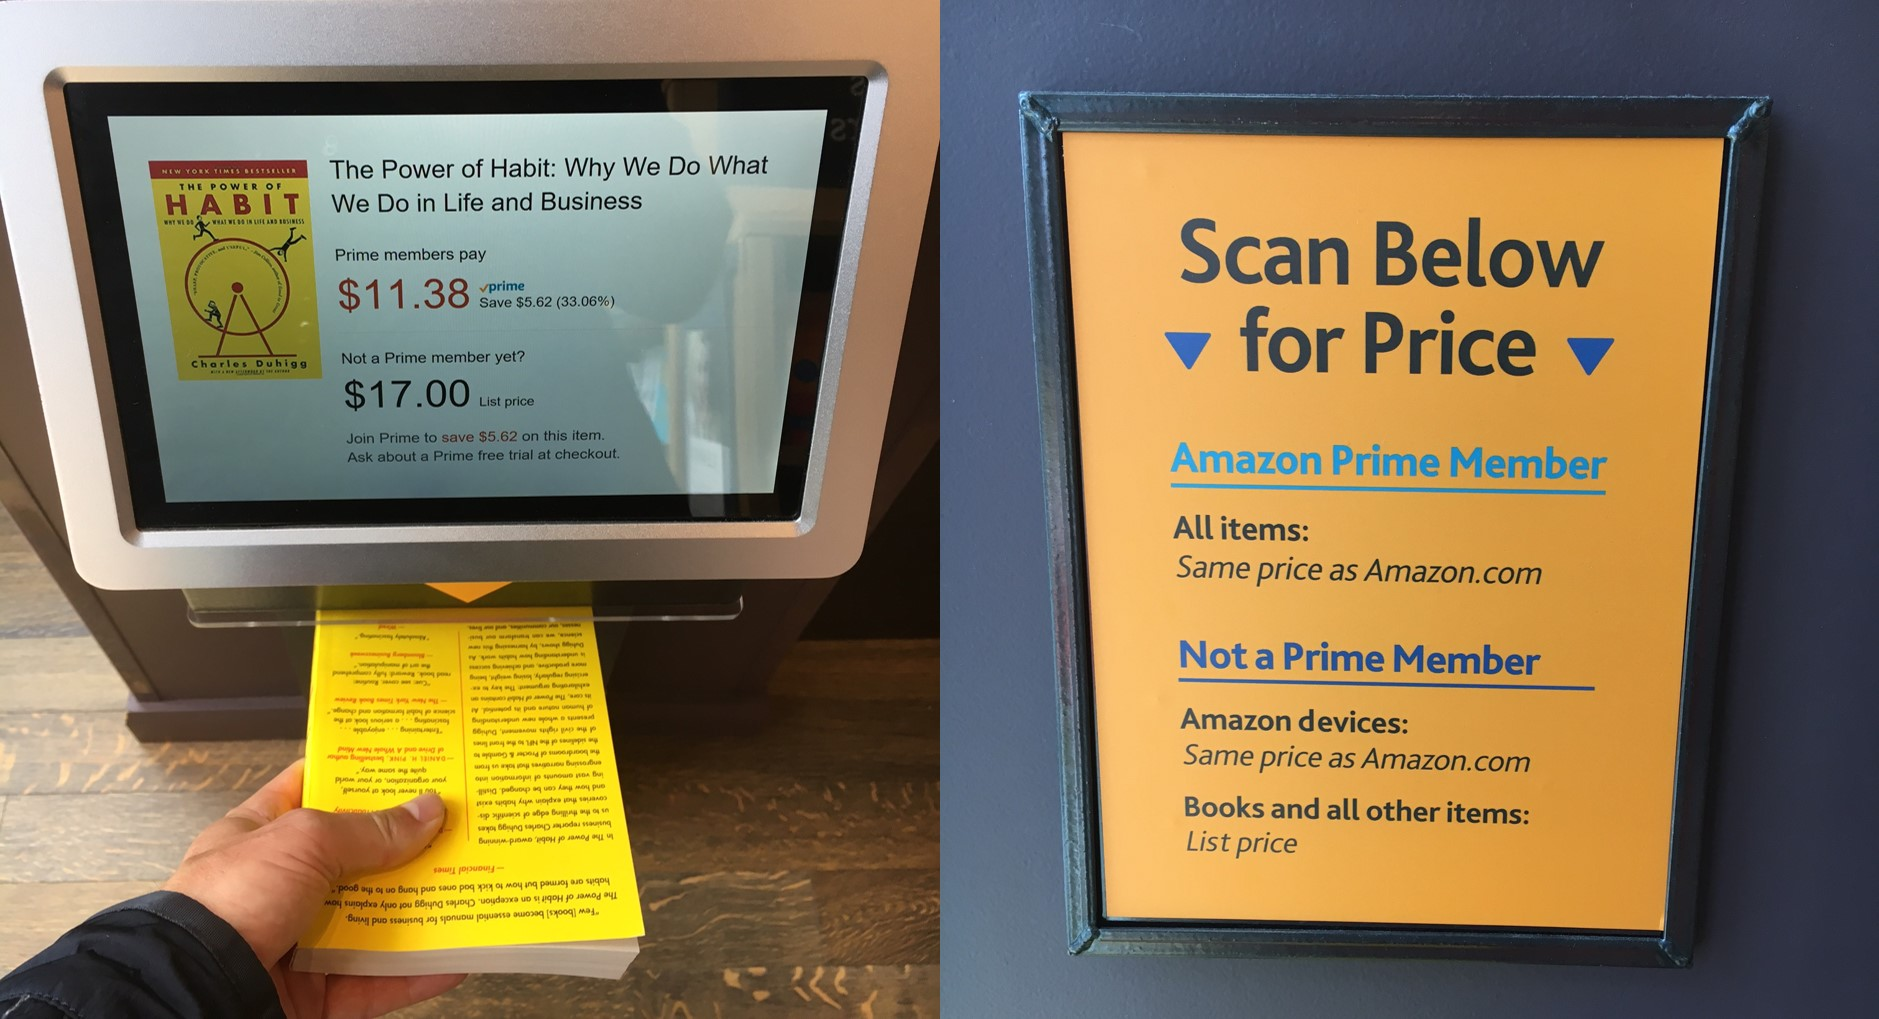 Amazon Book Scanning